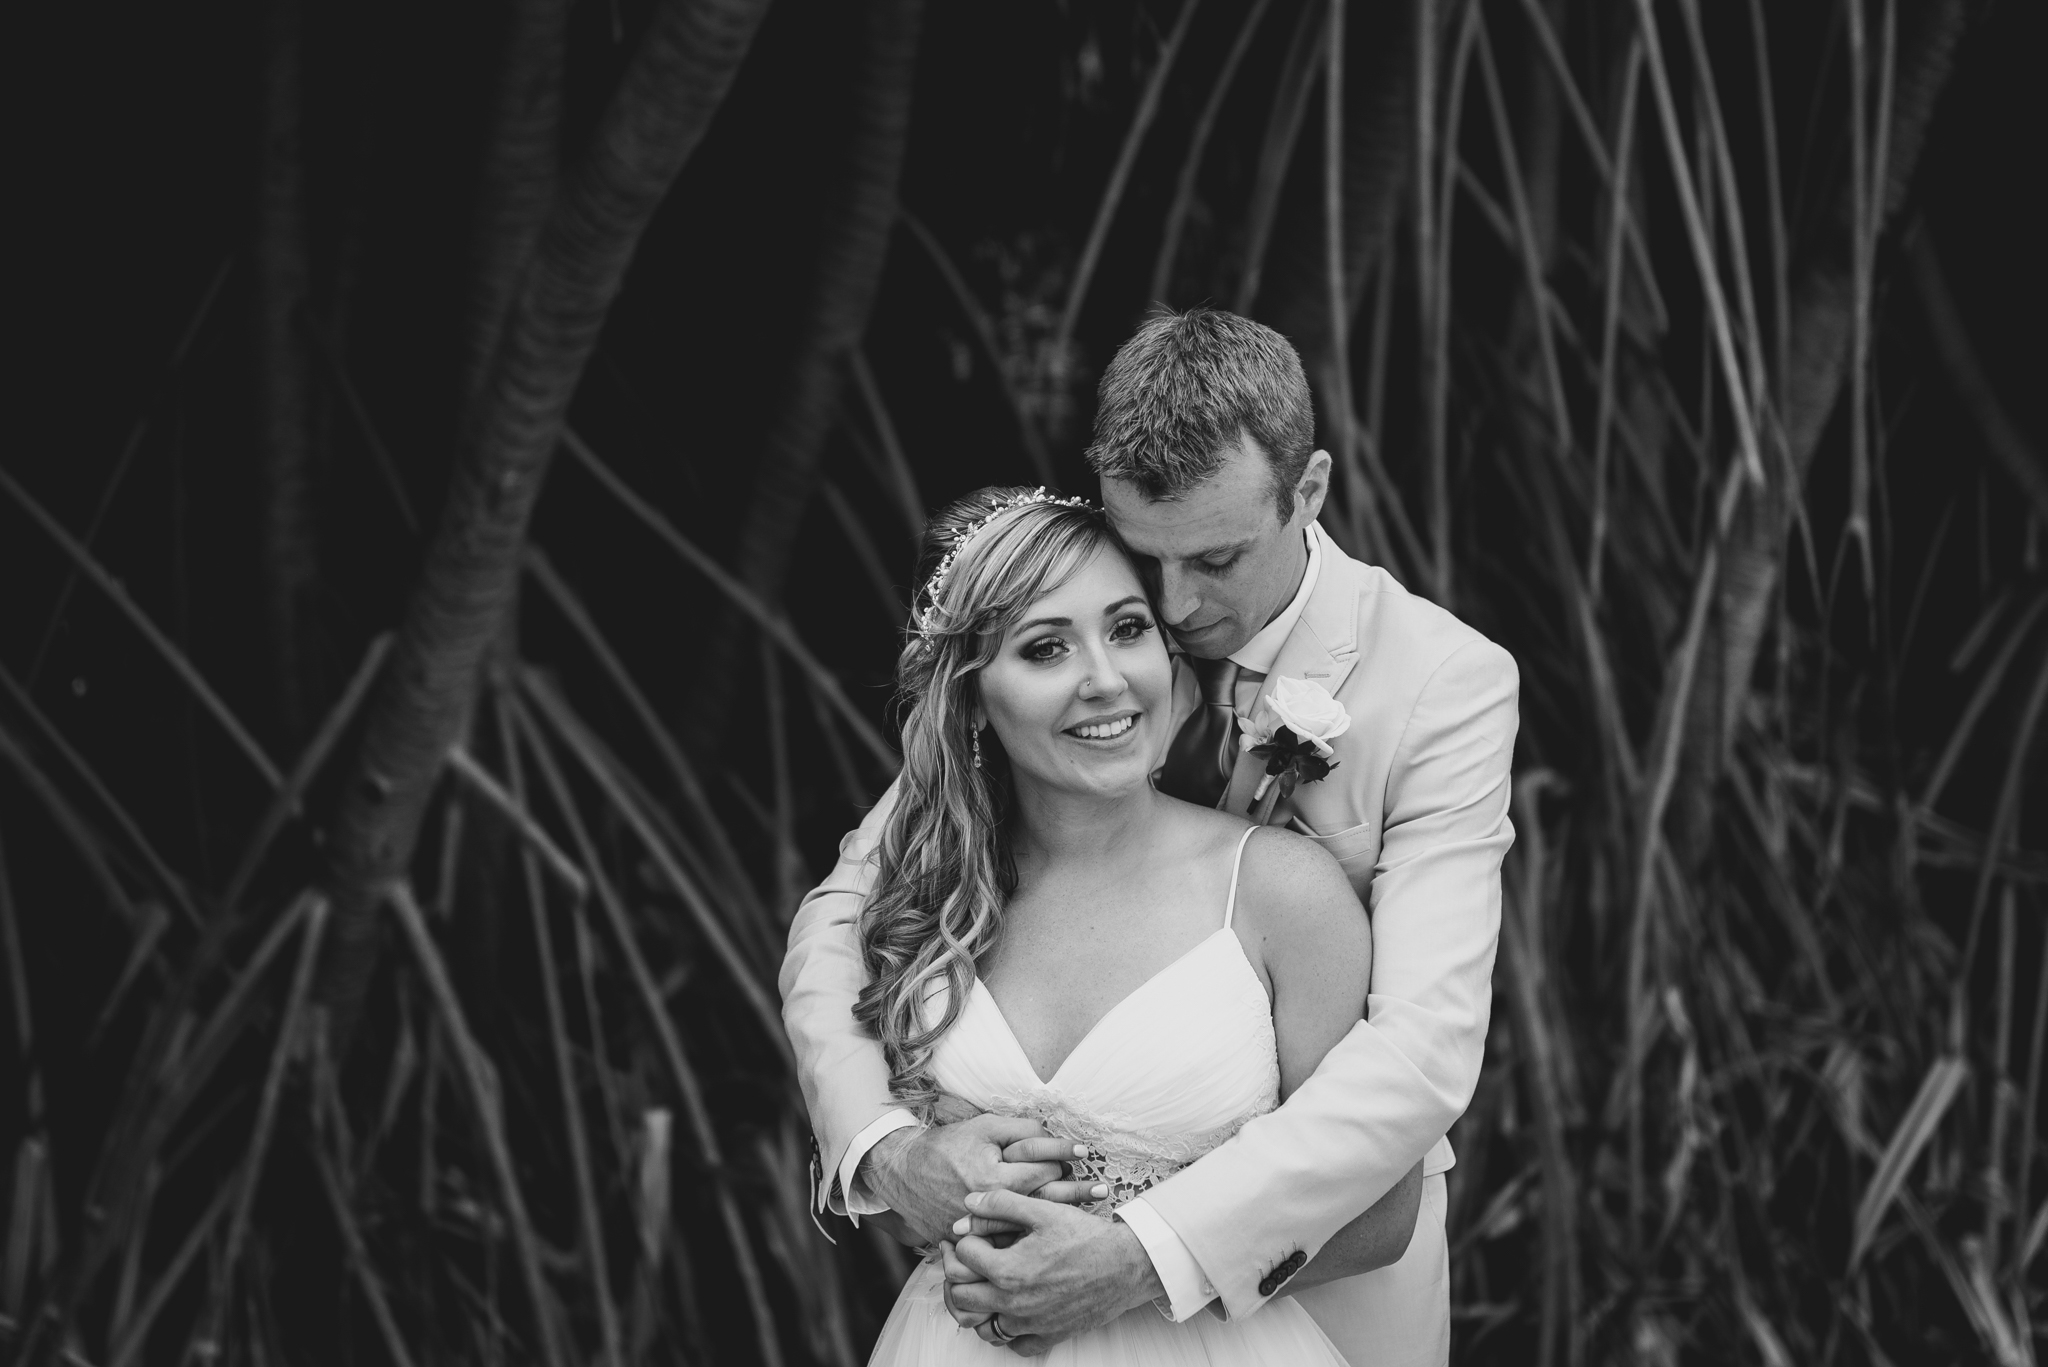 love-and-be-loved-photography-destination-wedding-photographer-cancun-mexico-jessica-jon-image-picture-photo-133.jpg